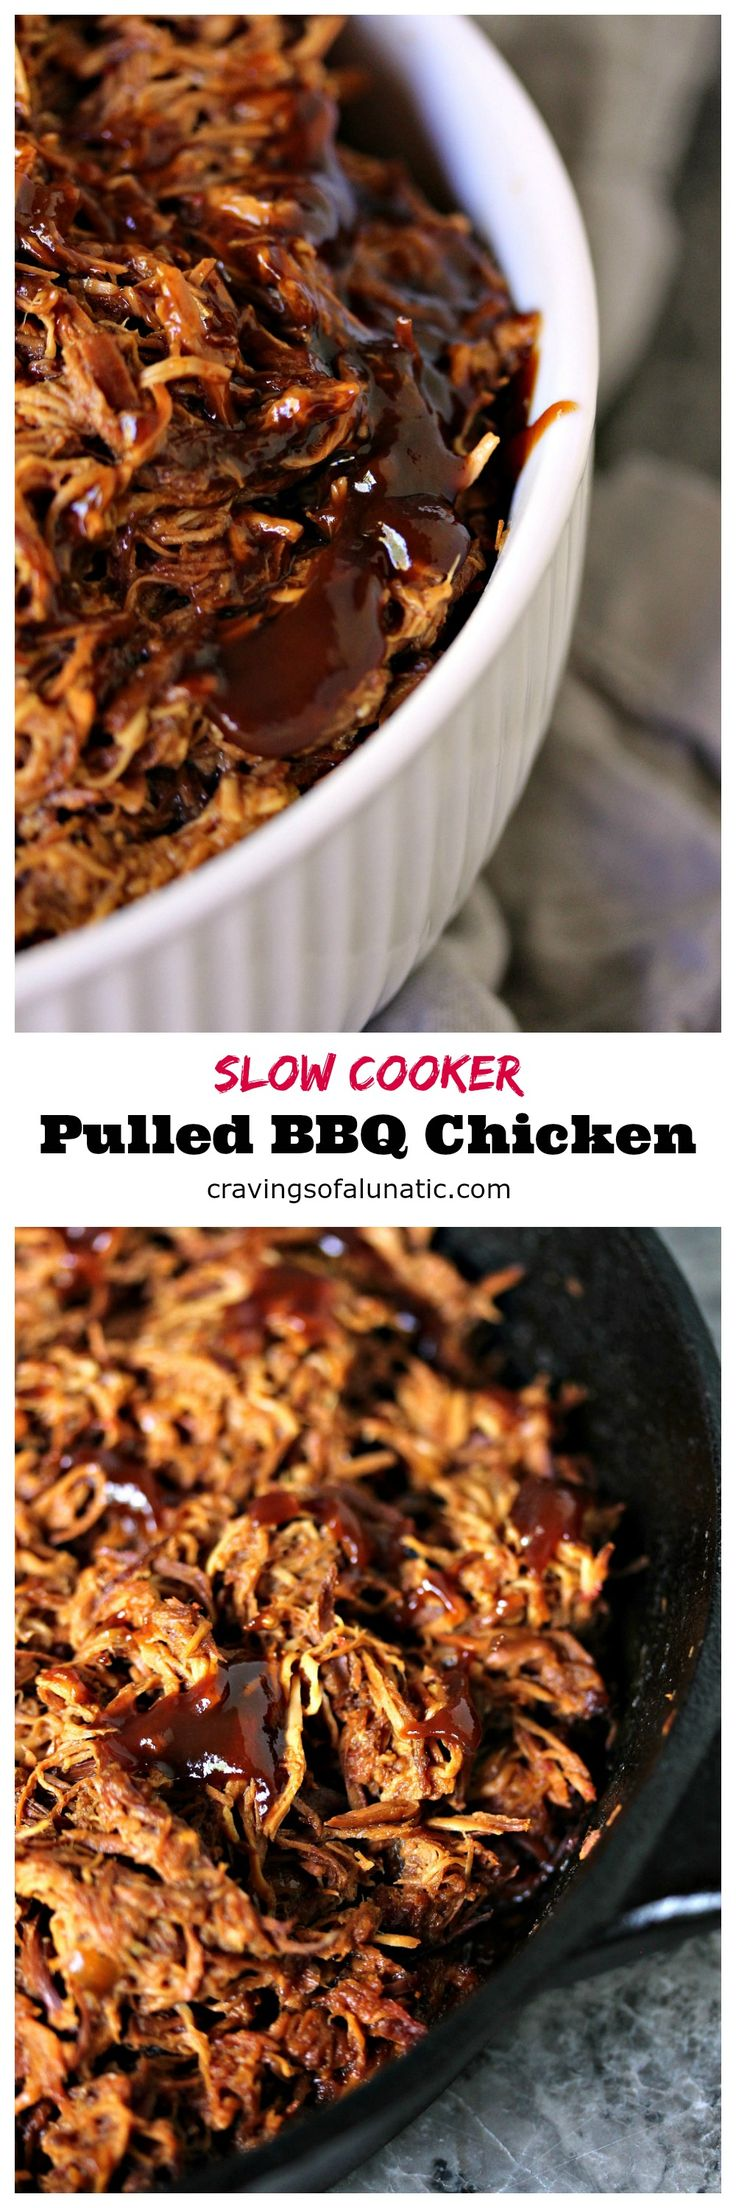 """Slow Cooker Pulled BBQ Chicken from cravingsofalunatic.com- This easy recipe for pulled BBQ chicken is made in the slow cooker with just a few ingredients. It's a great """"set it and forget it"""" recipe. Eat it plain, or pile it high on a slider bun! (@CravingsLunatic)"""